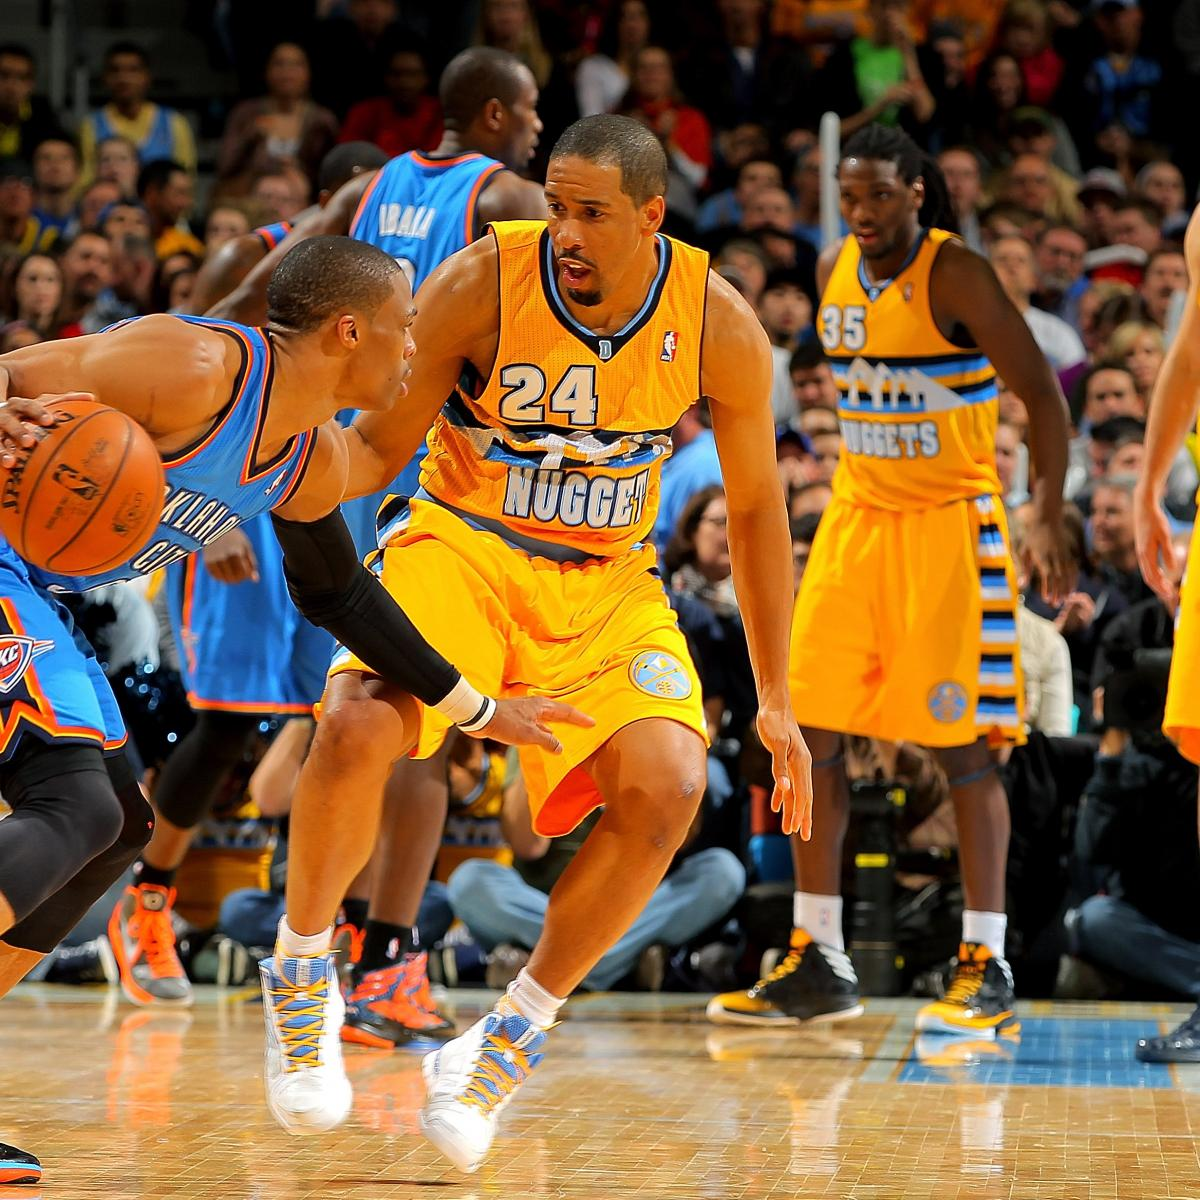 Thunder Vs. Nuggets: Free-Throw Shooting Will Be